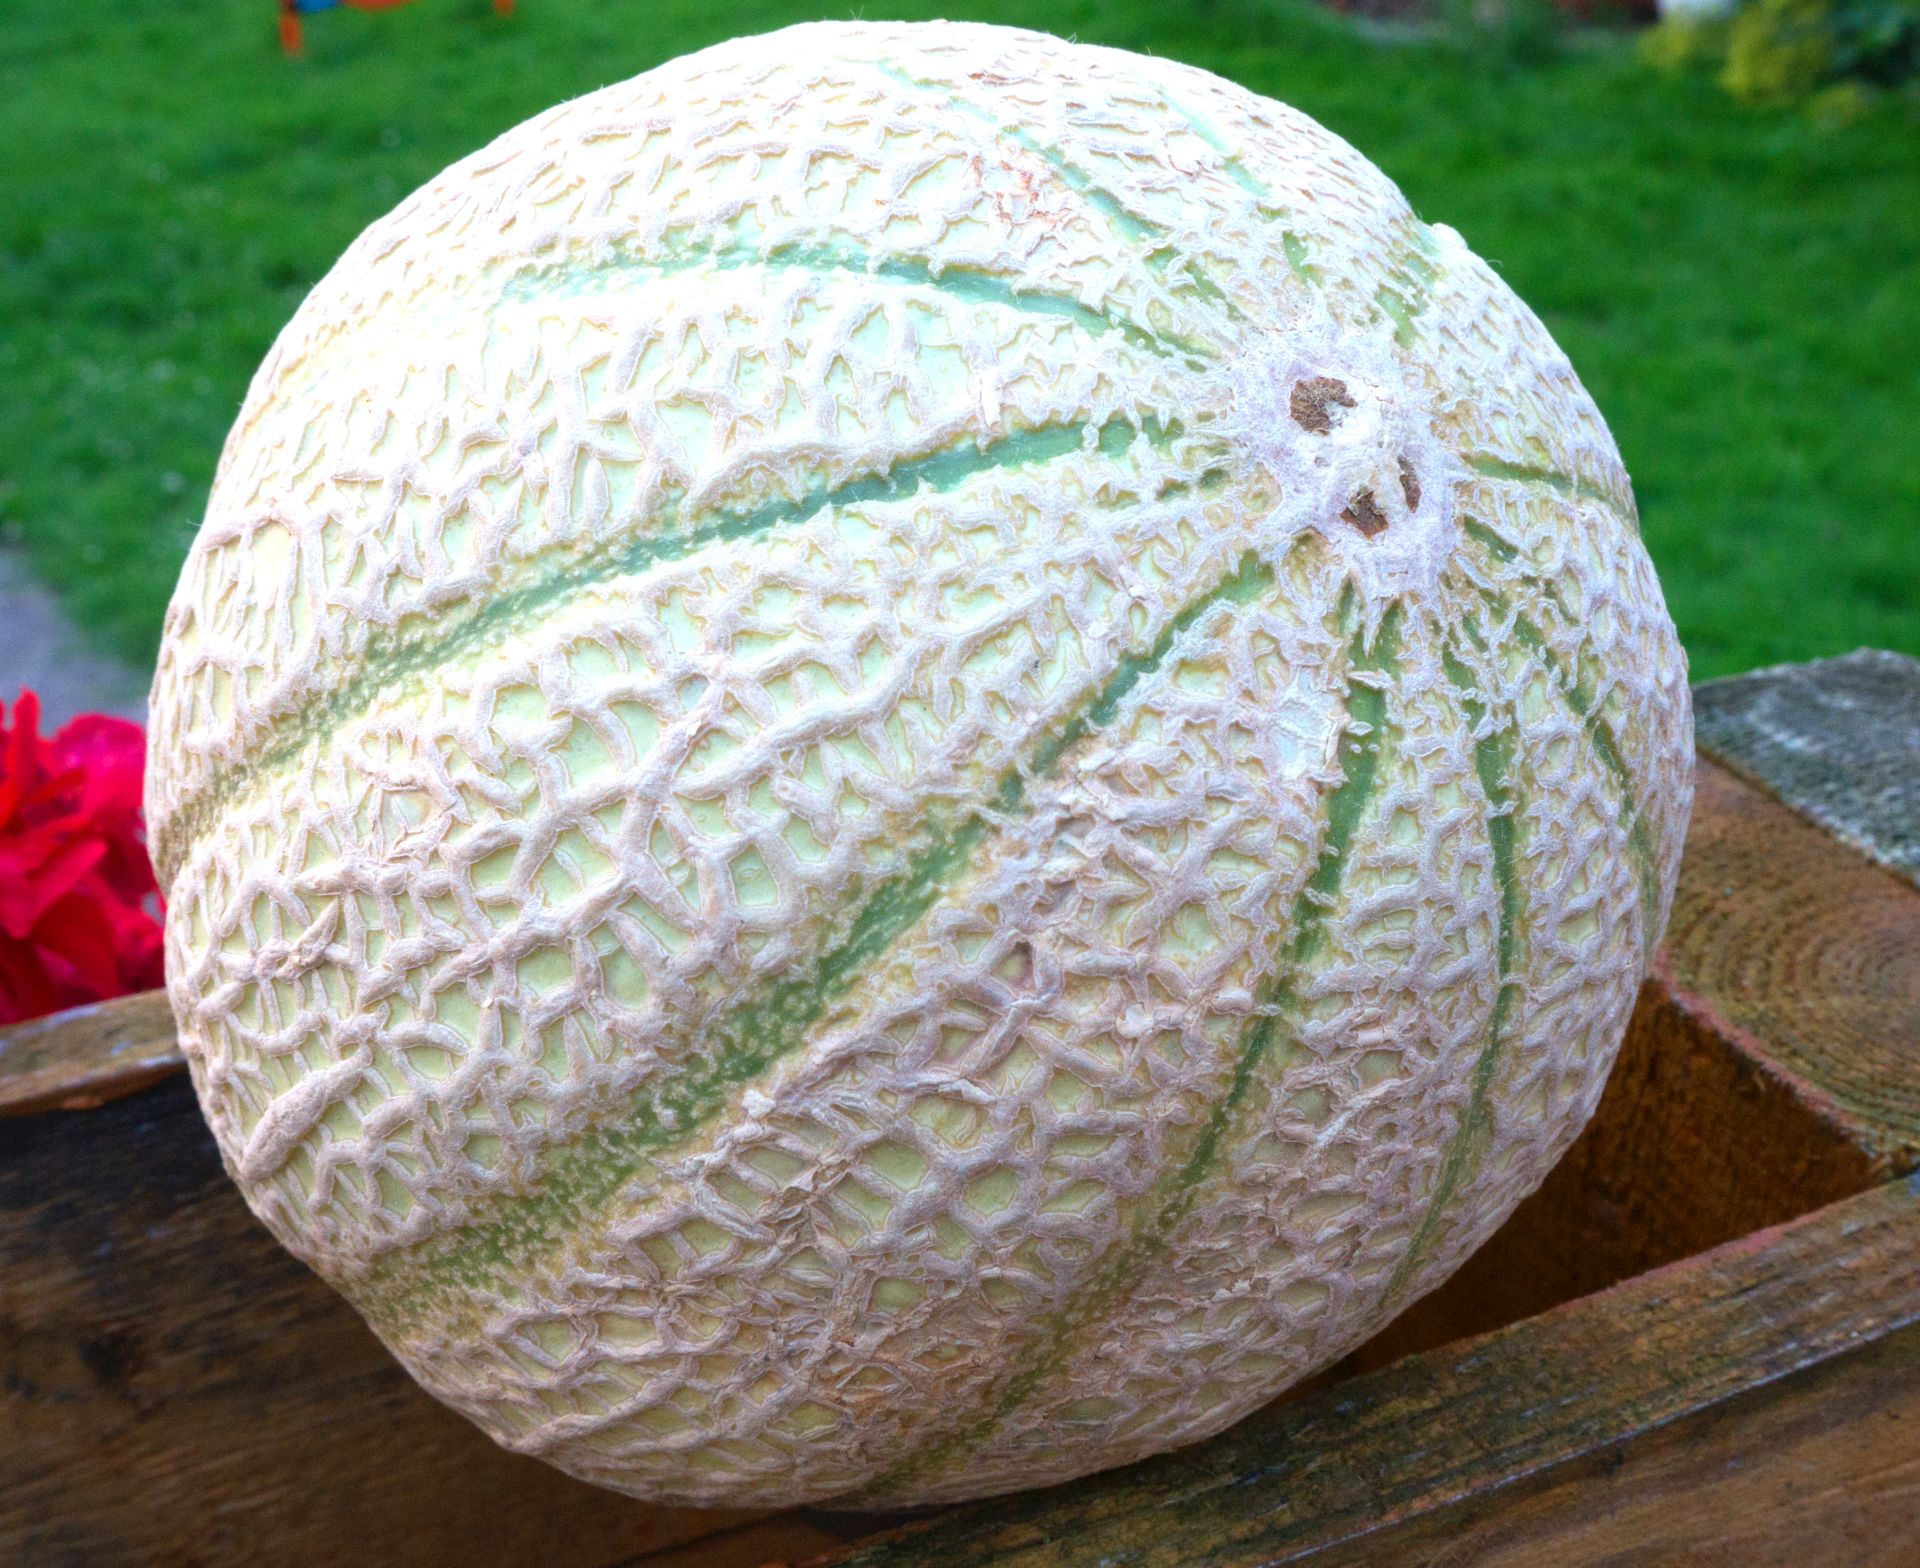 Melone Reif